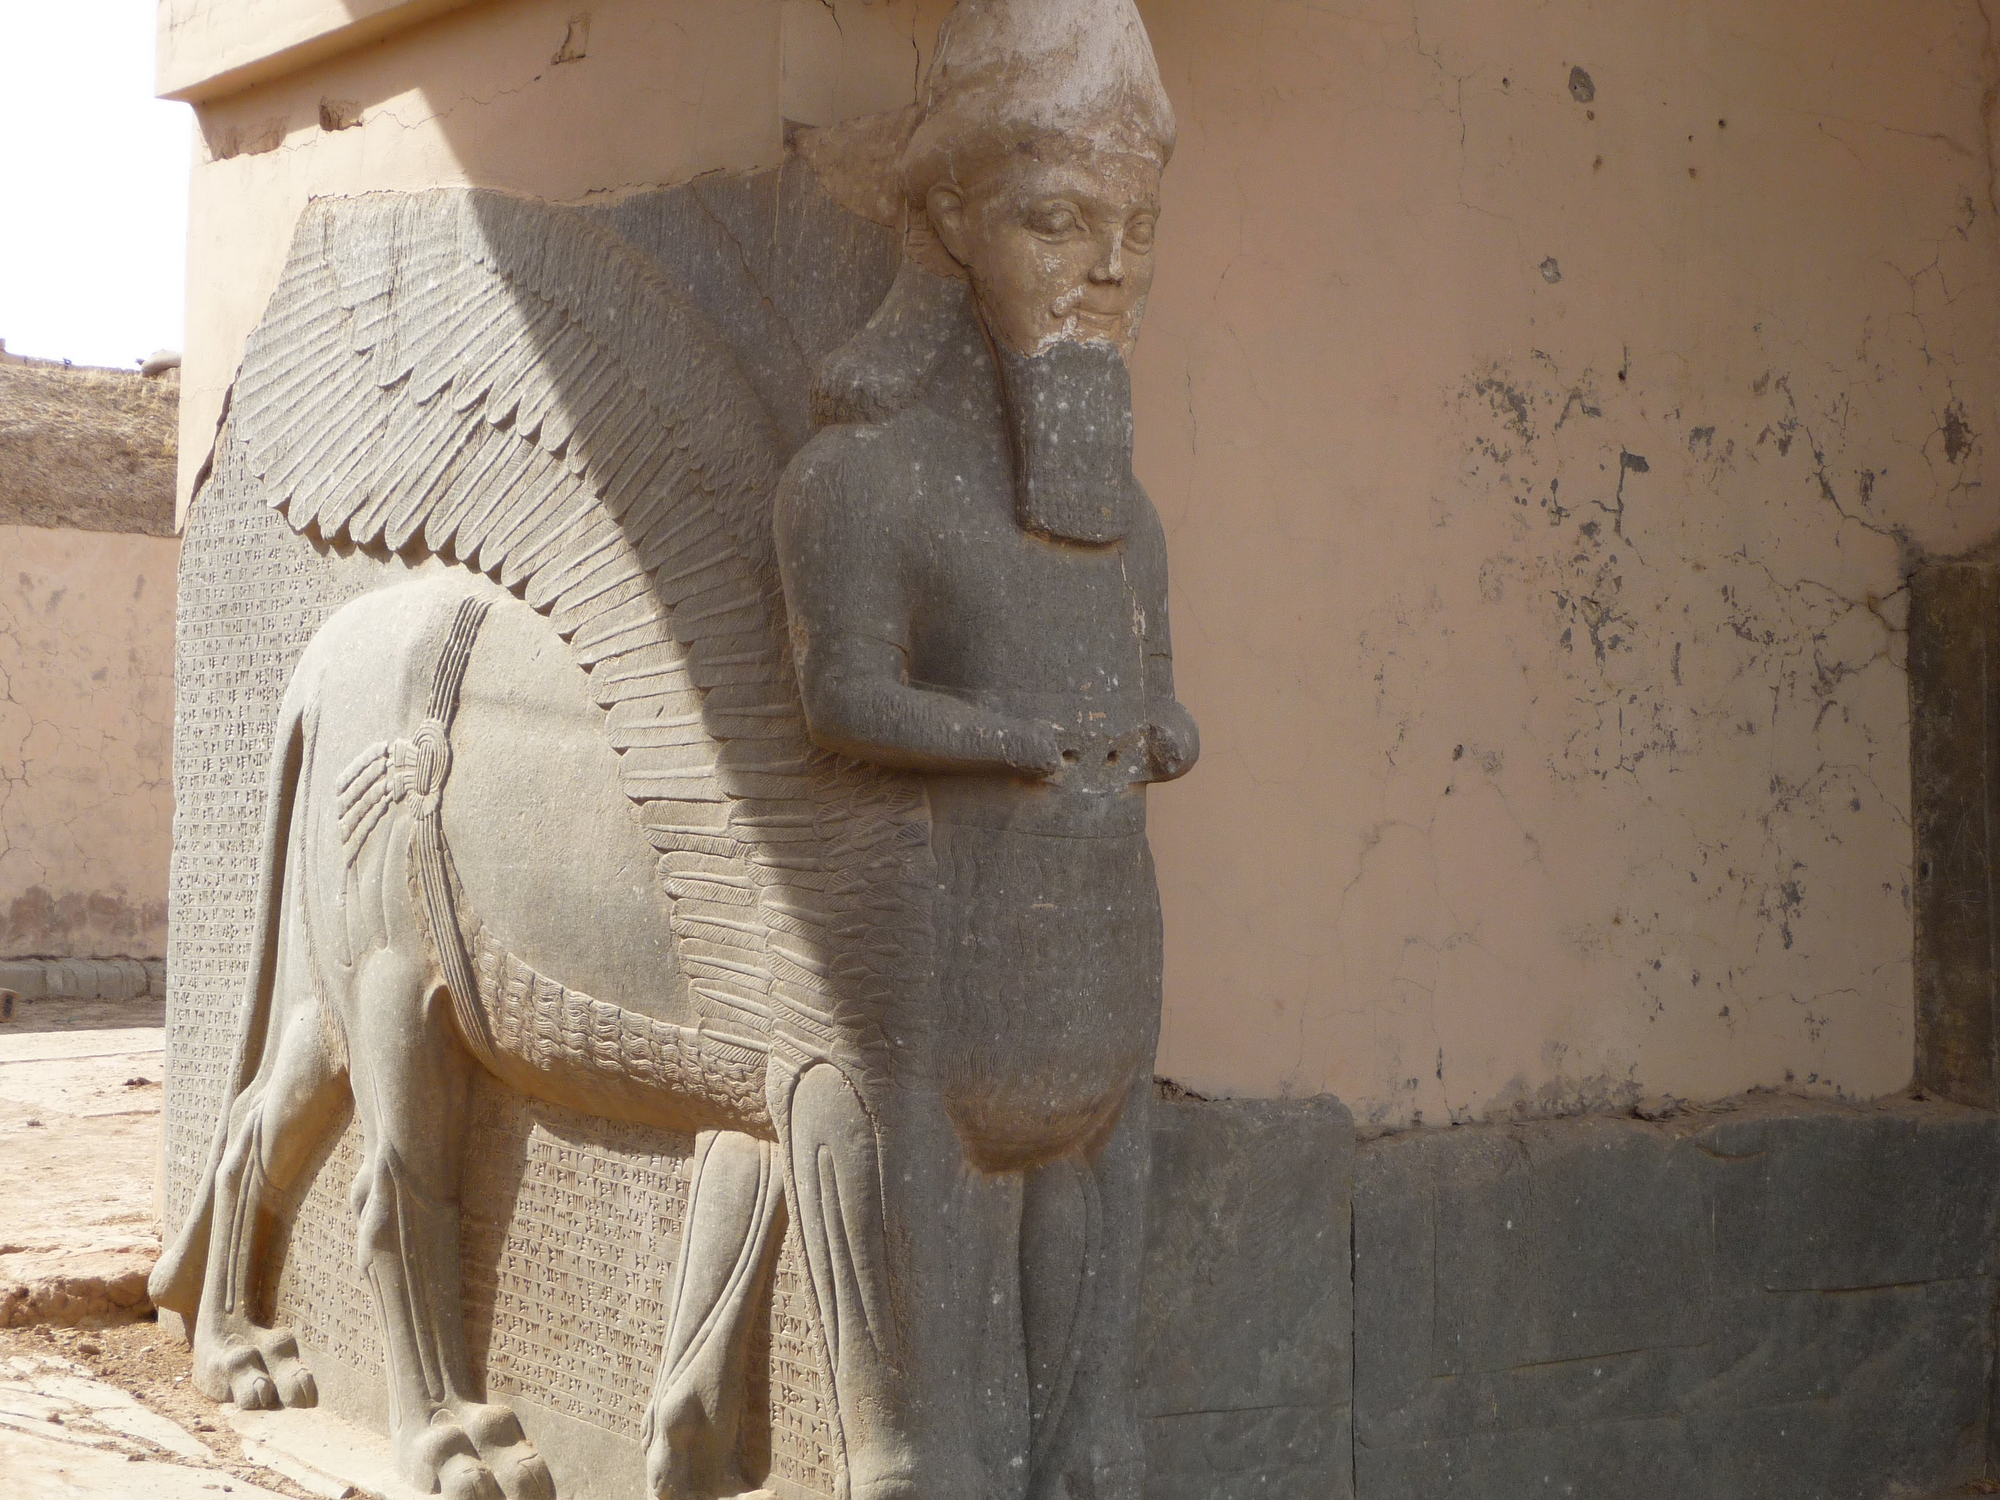 Babylon and its treasures: preserving an ancient city